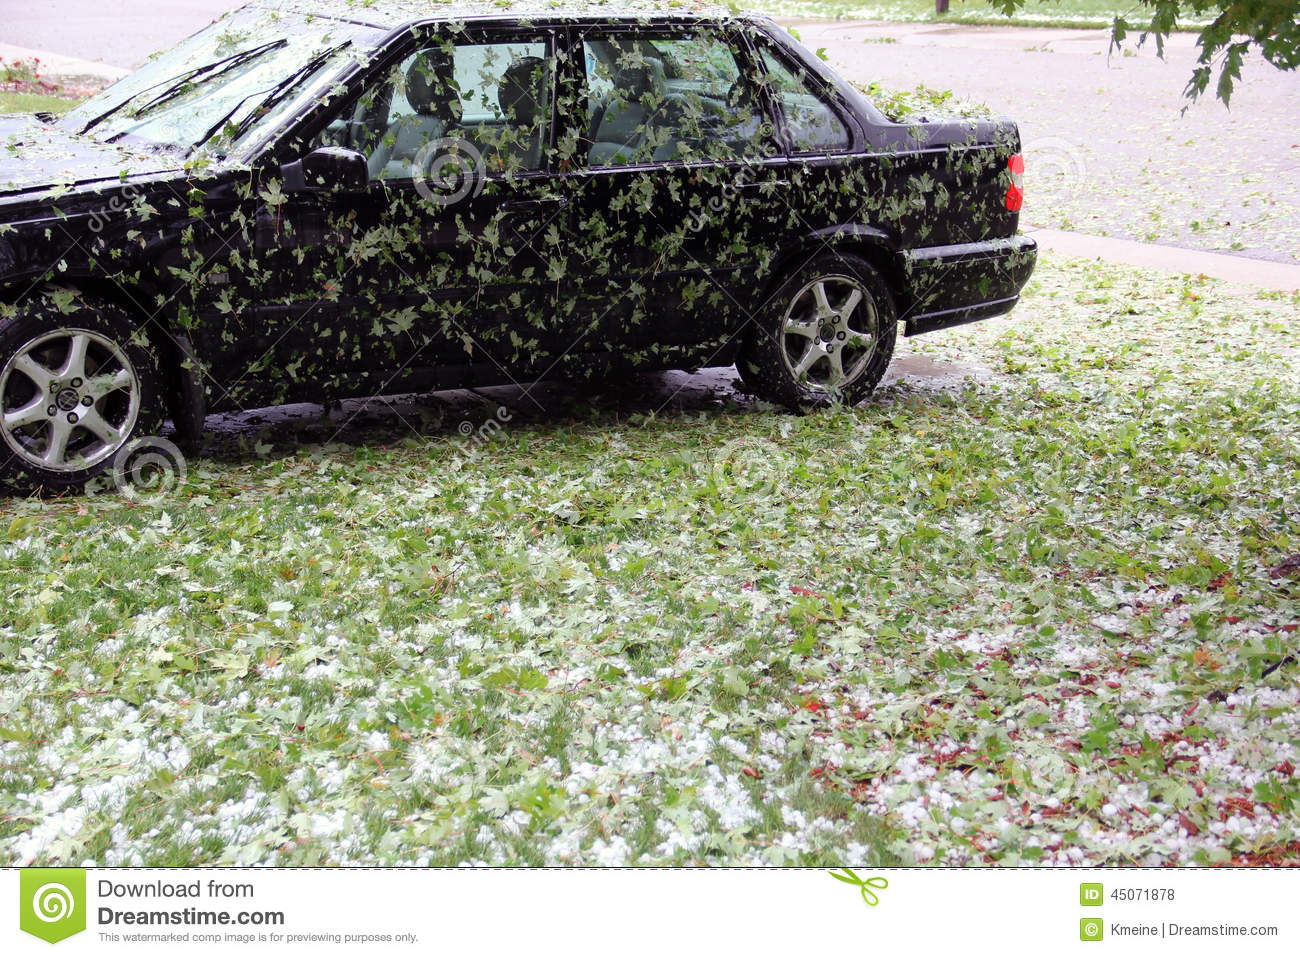 Can Tree Leaves Scratch Car Paint